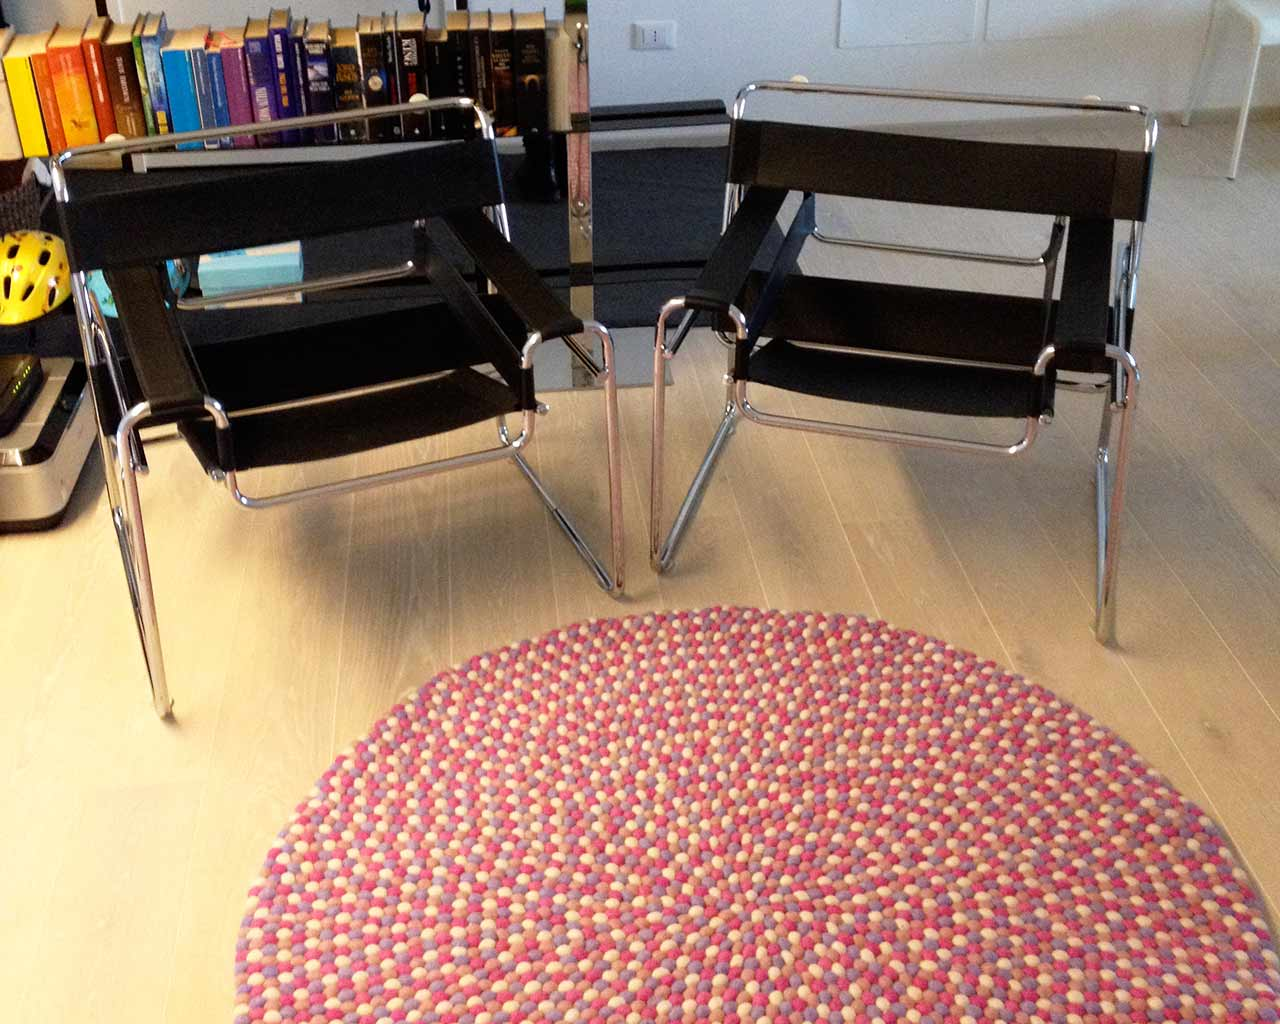 design rug living room salon two black chairs